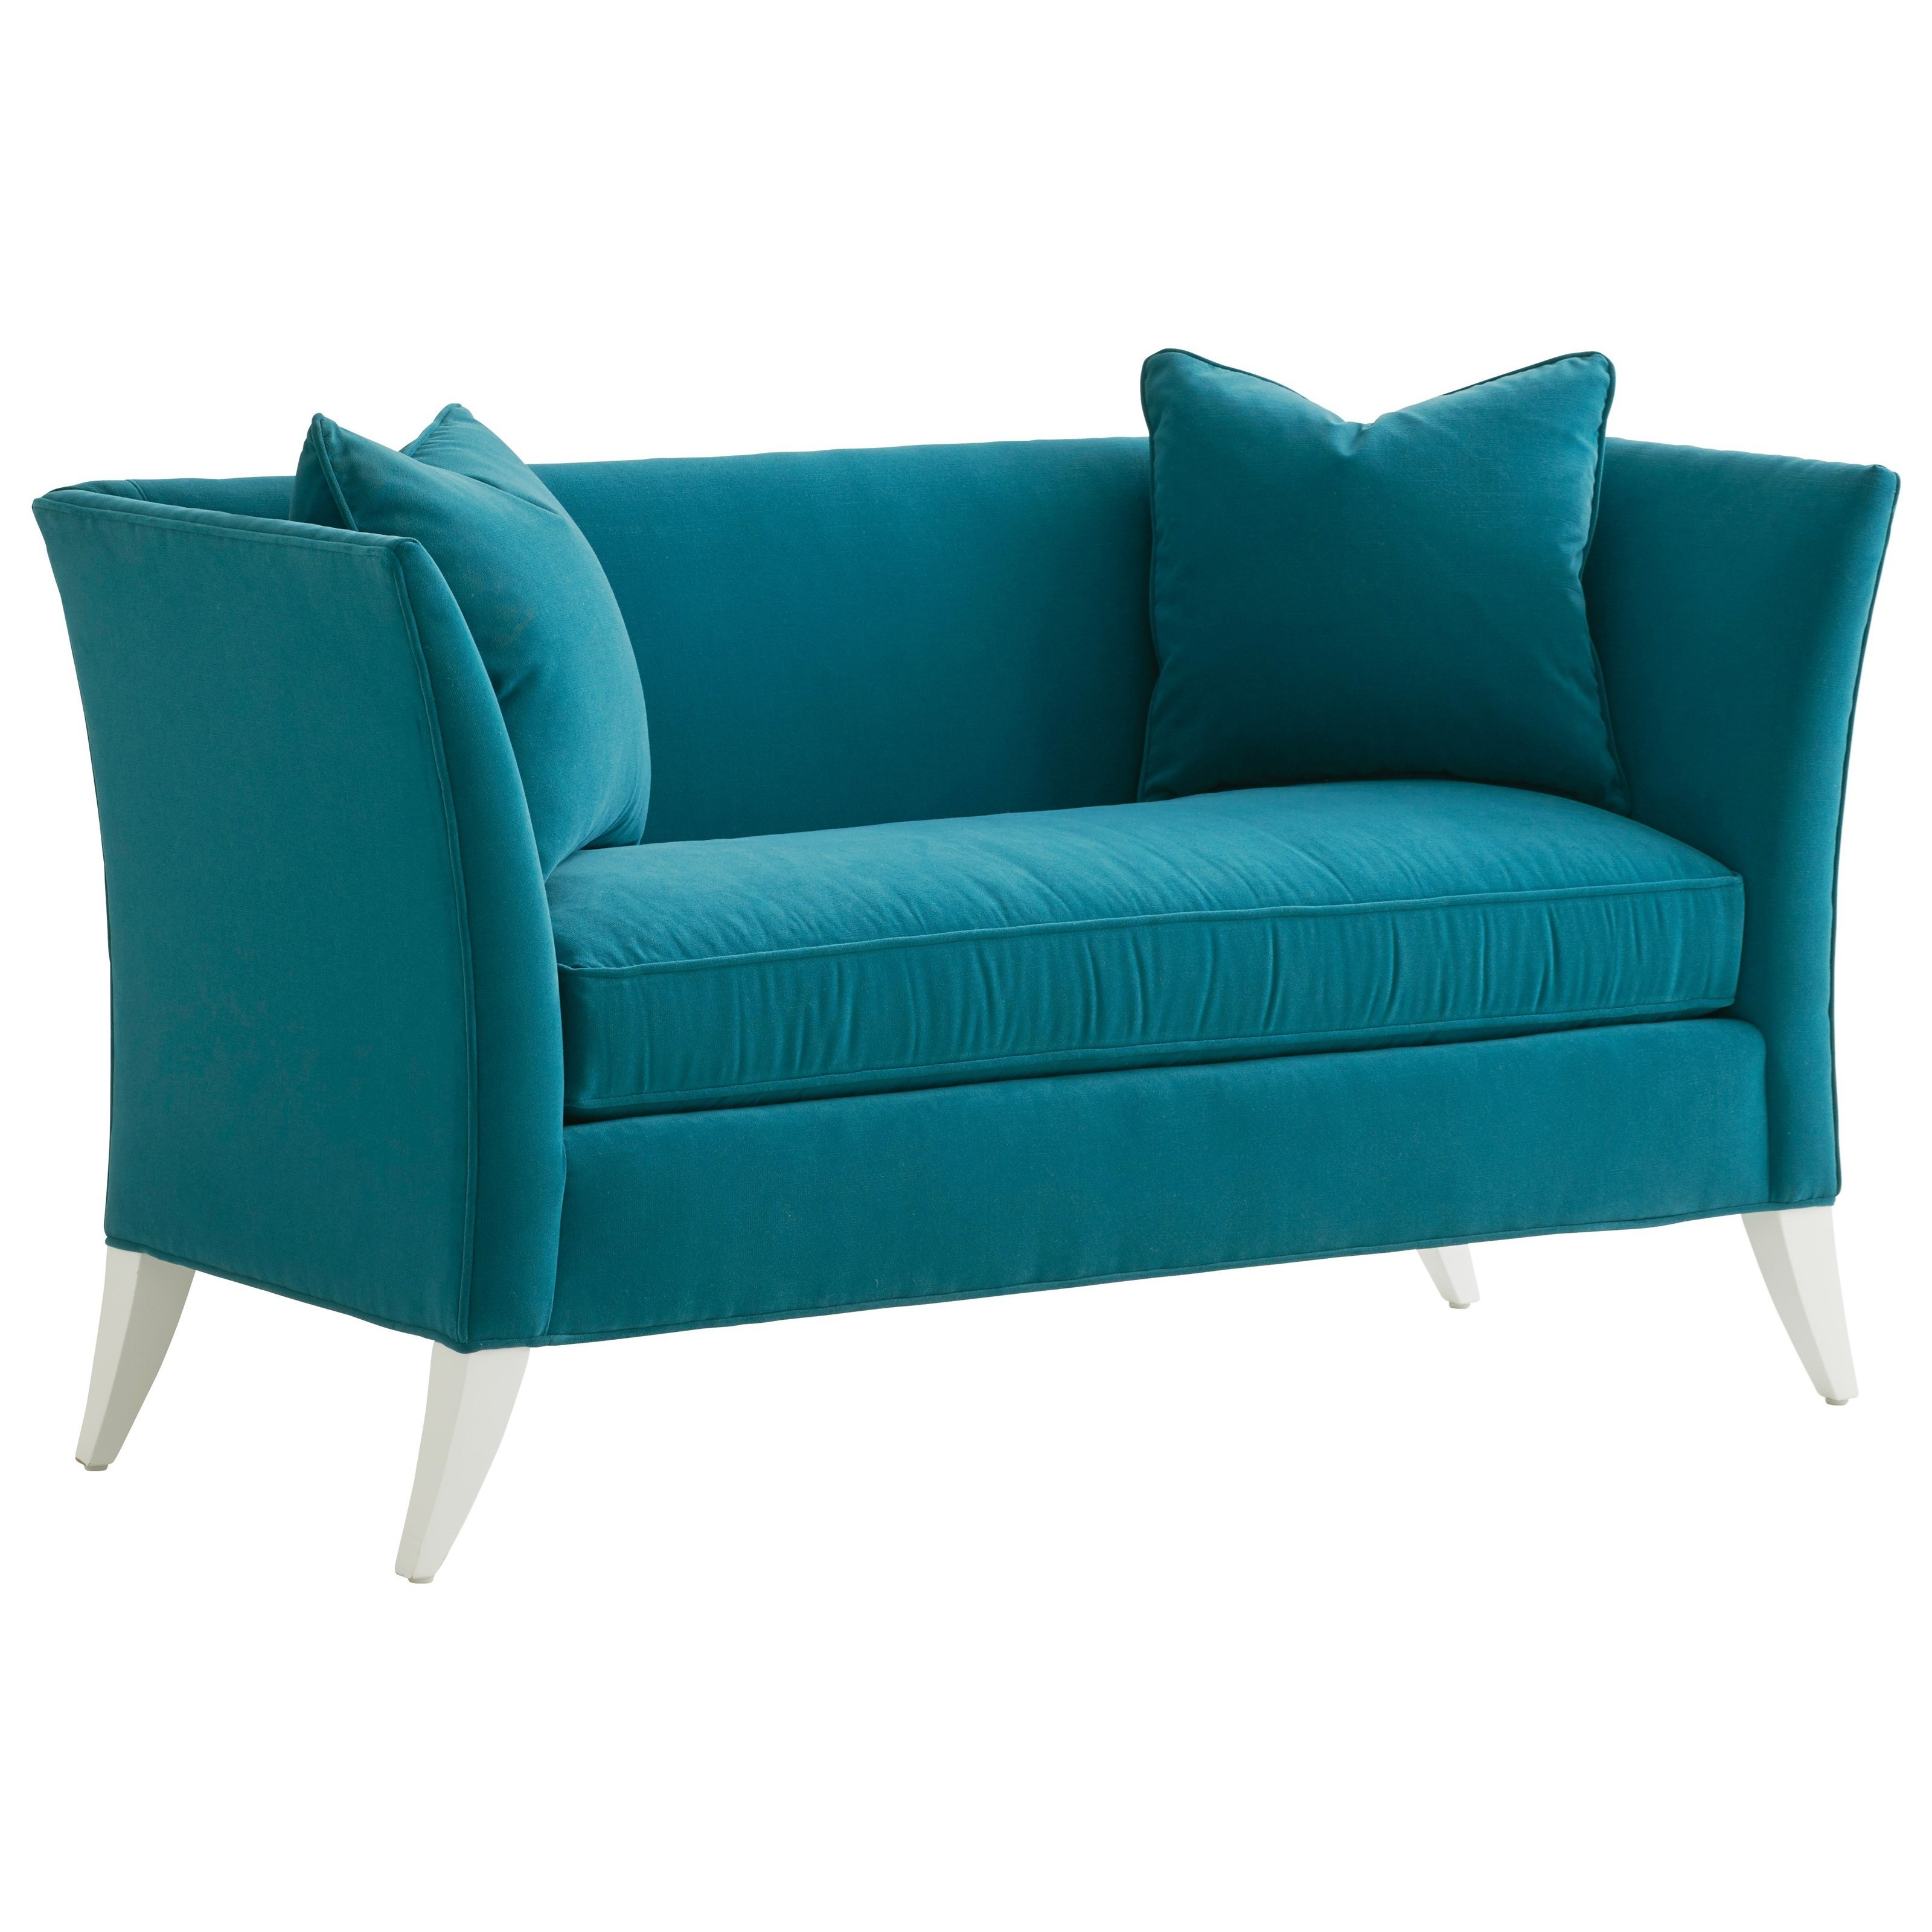 Hampstead Tuxedo Back Settee with 2 Pillows